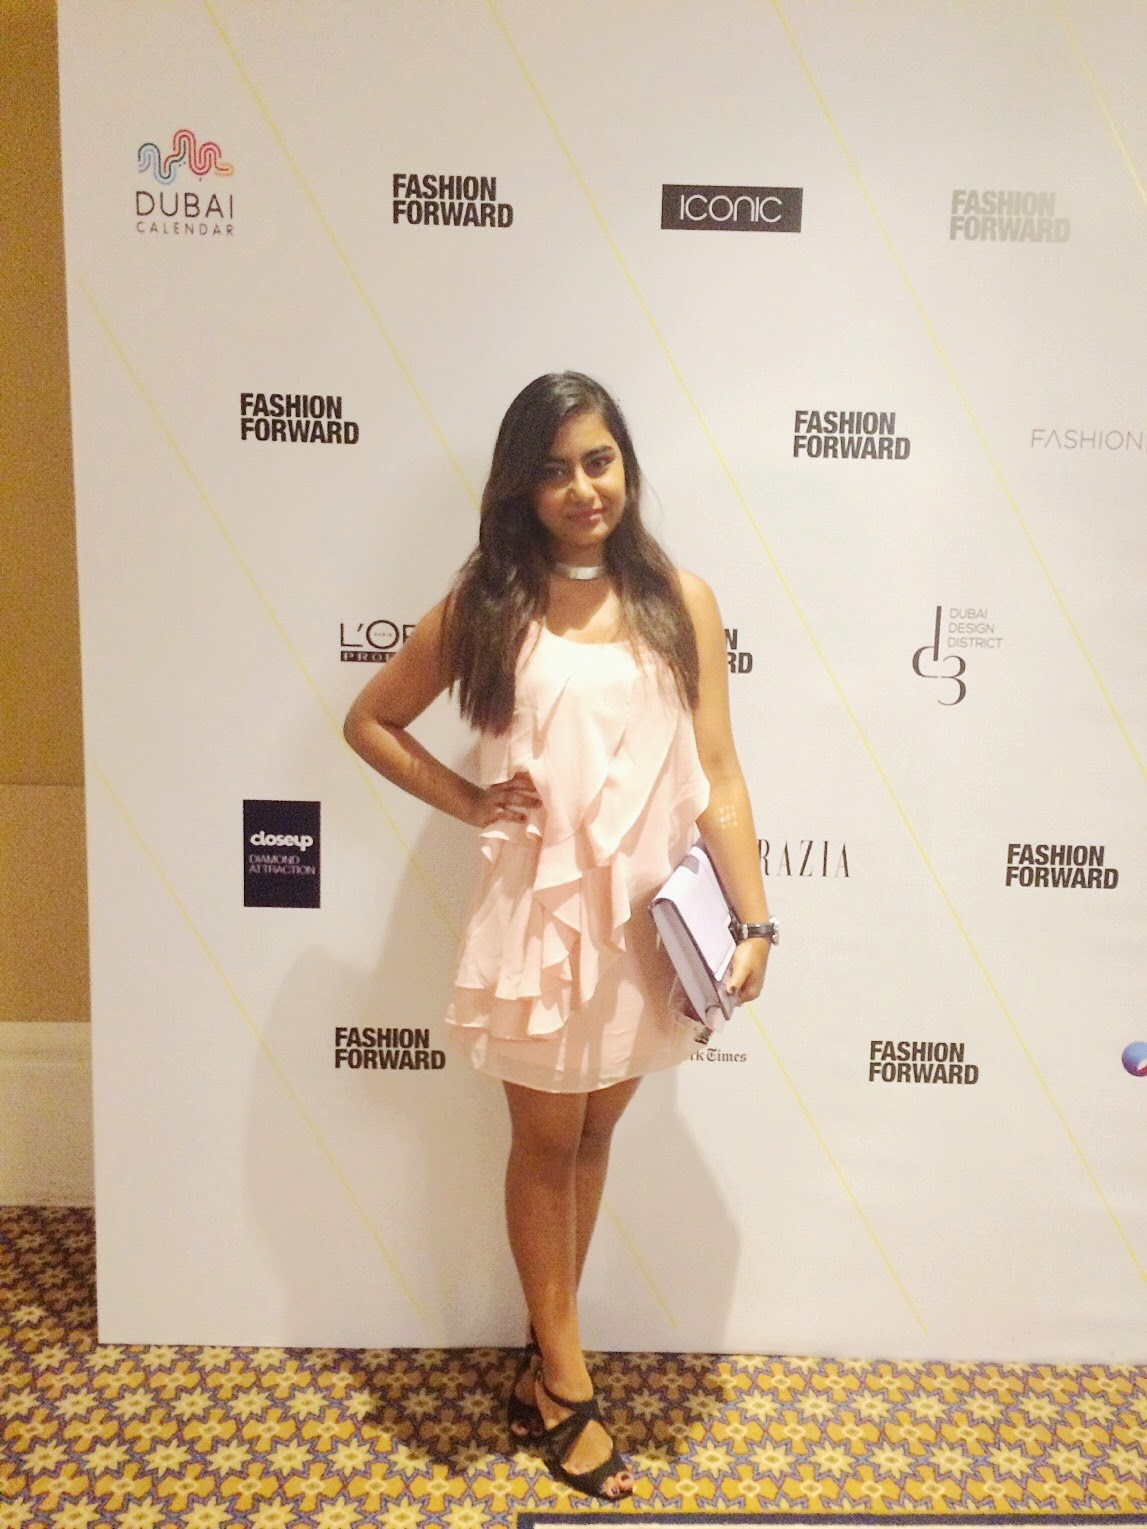 fashion, style, fashion show, fashion forward, fashion forward season 4, ffwd, ffwddxb, the style sorbet, dubai, my dubai, dubai fashion blog, fashion blog, blogger, style blogger, fashion blogger, dubai fashion blogger, kajol paul, outfit, ootd, outfit of the day